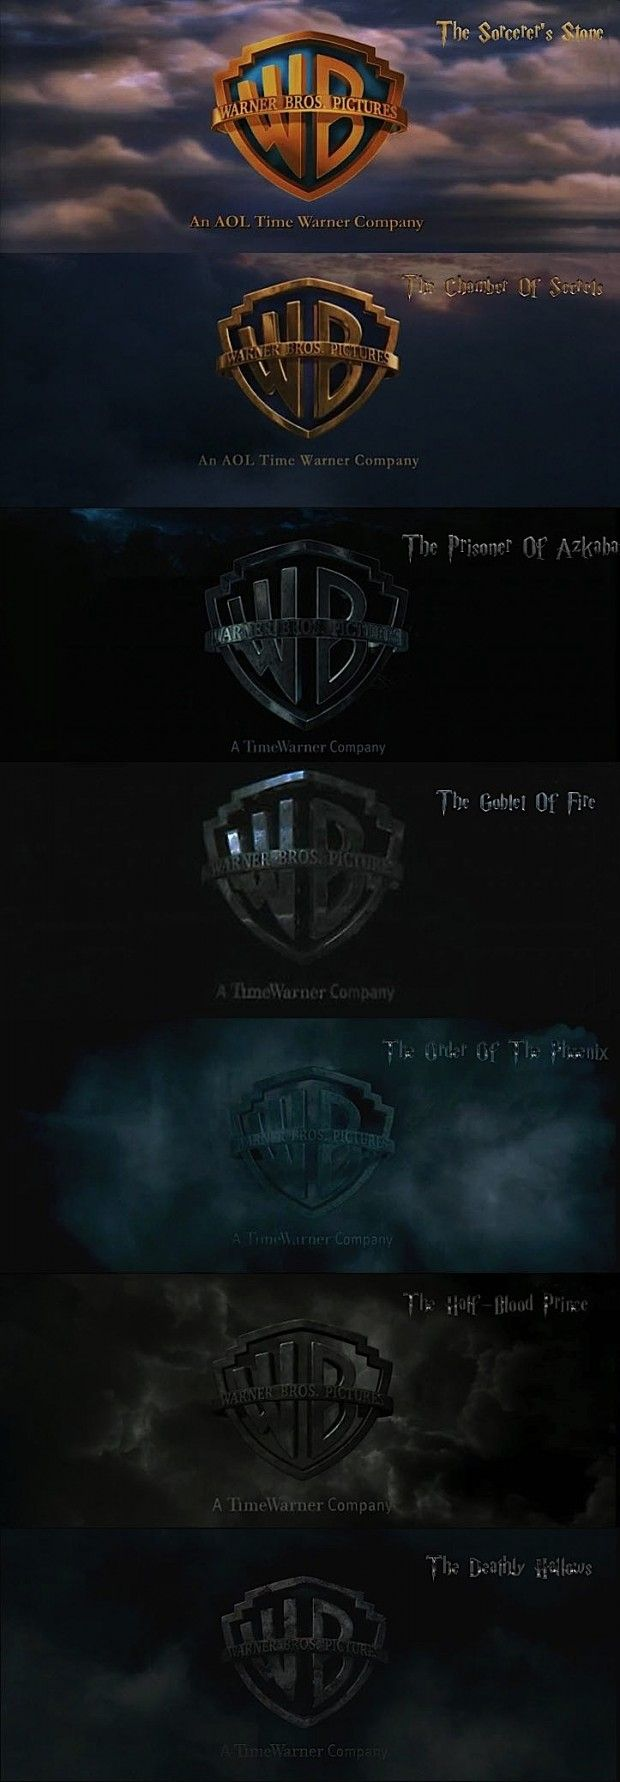 Harry Potter progression of scary